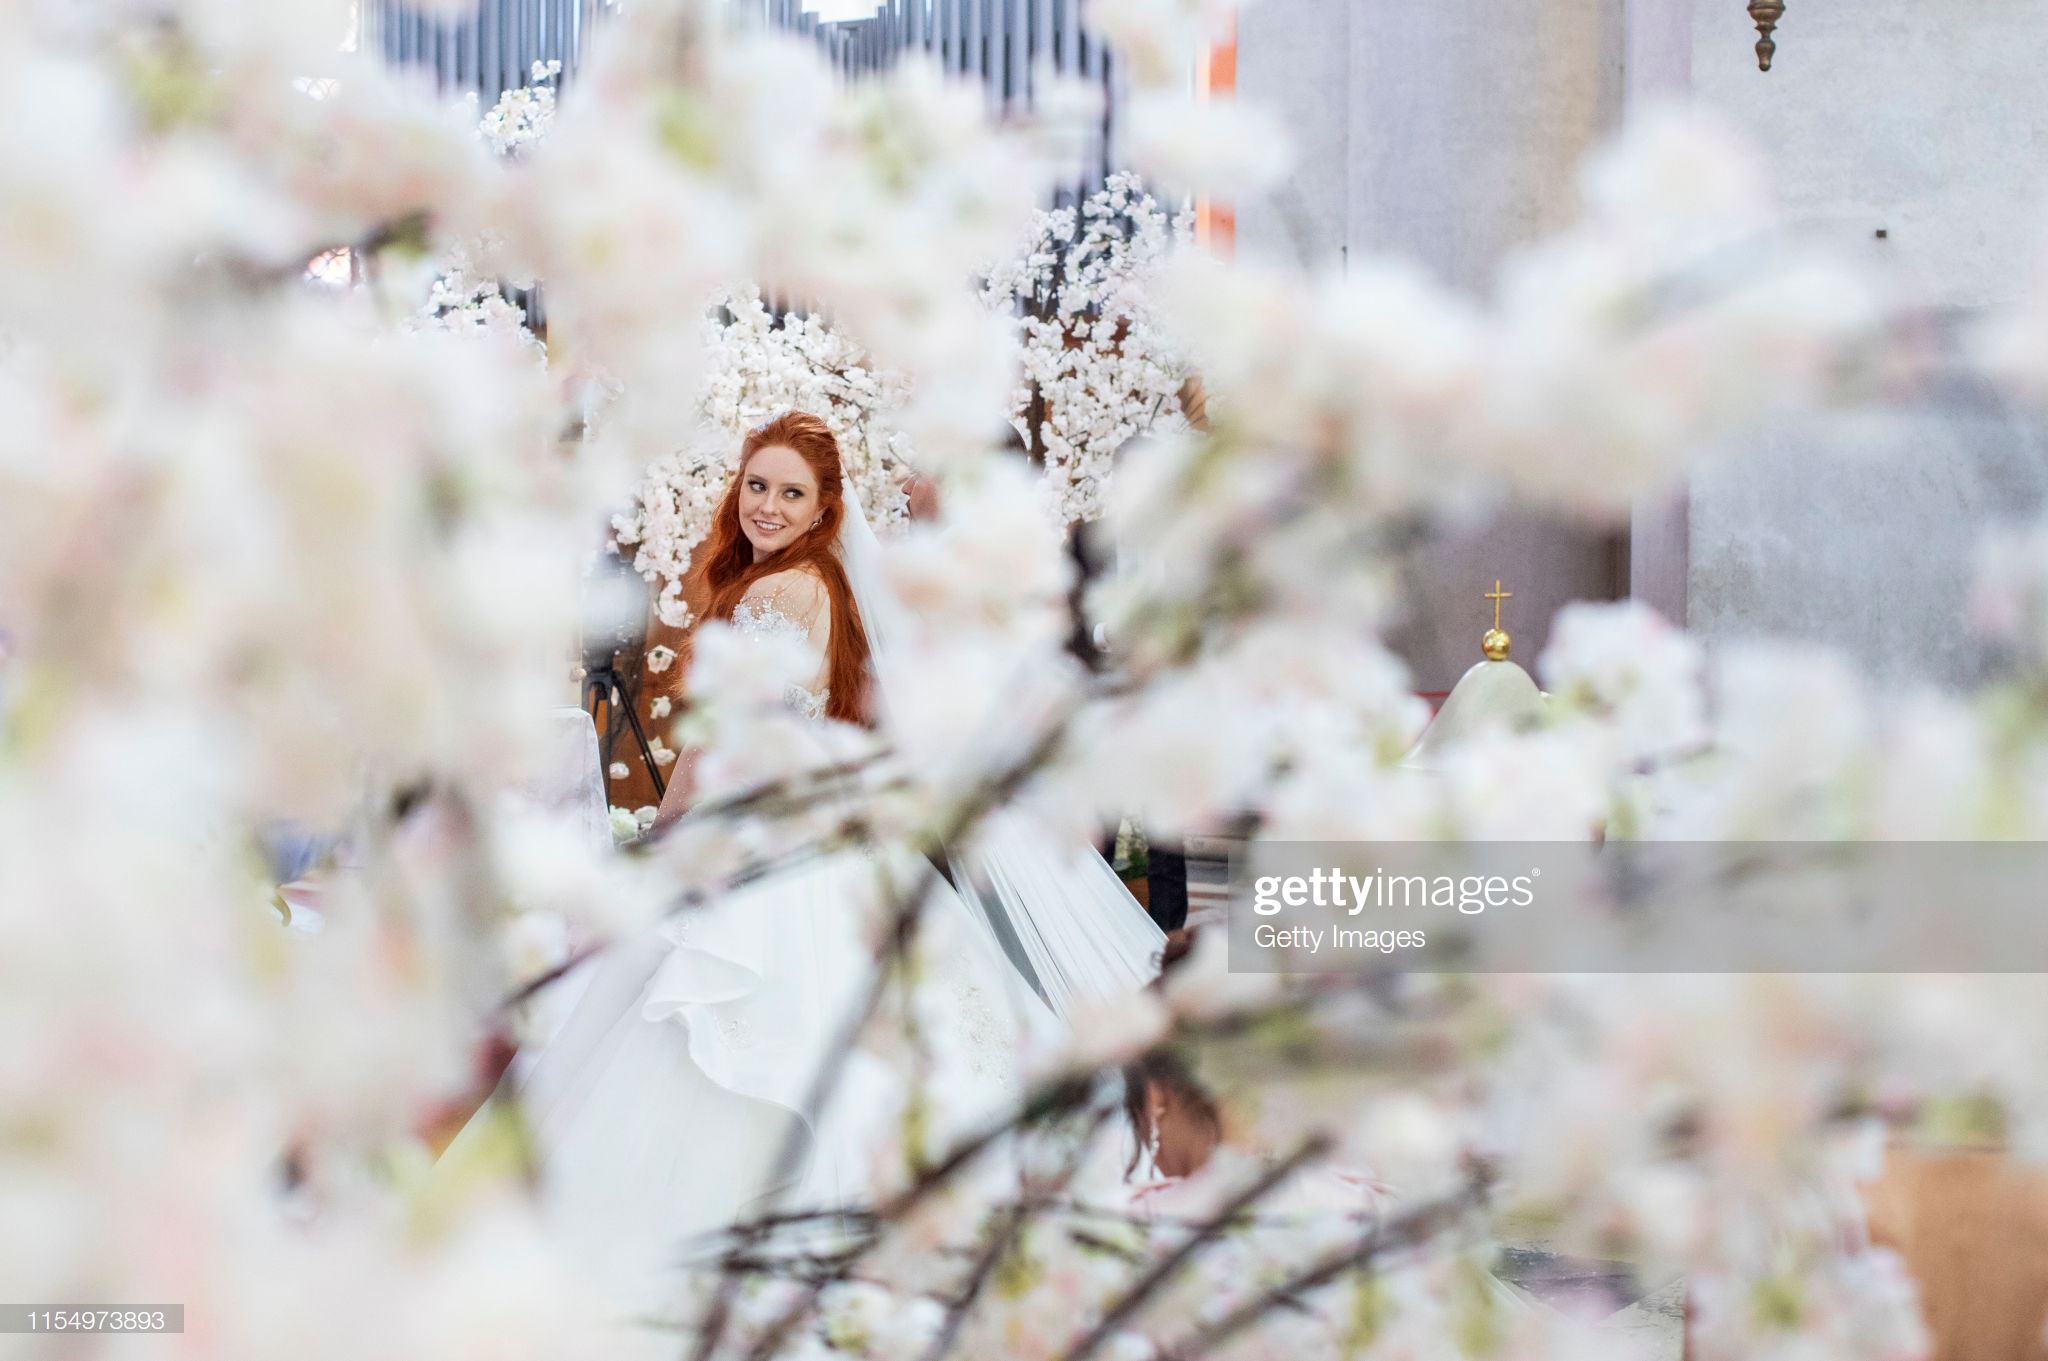 gettyimages-1154973893-2048x2048.jpg